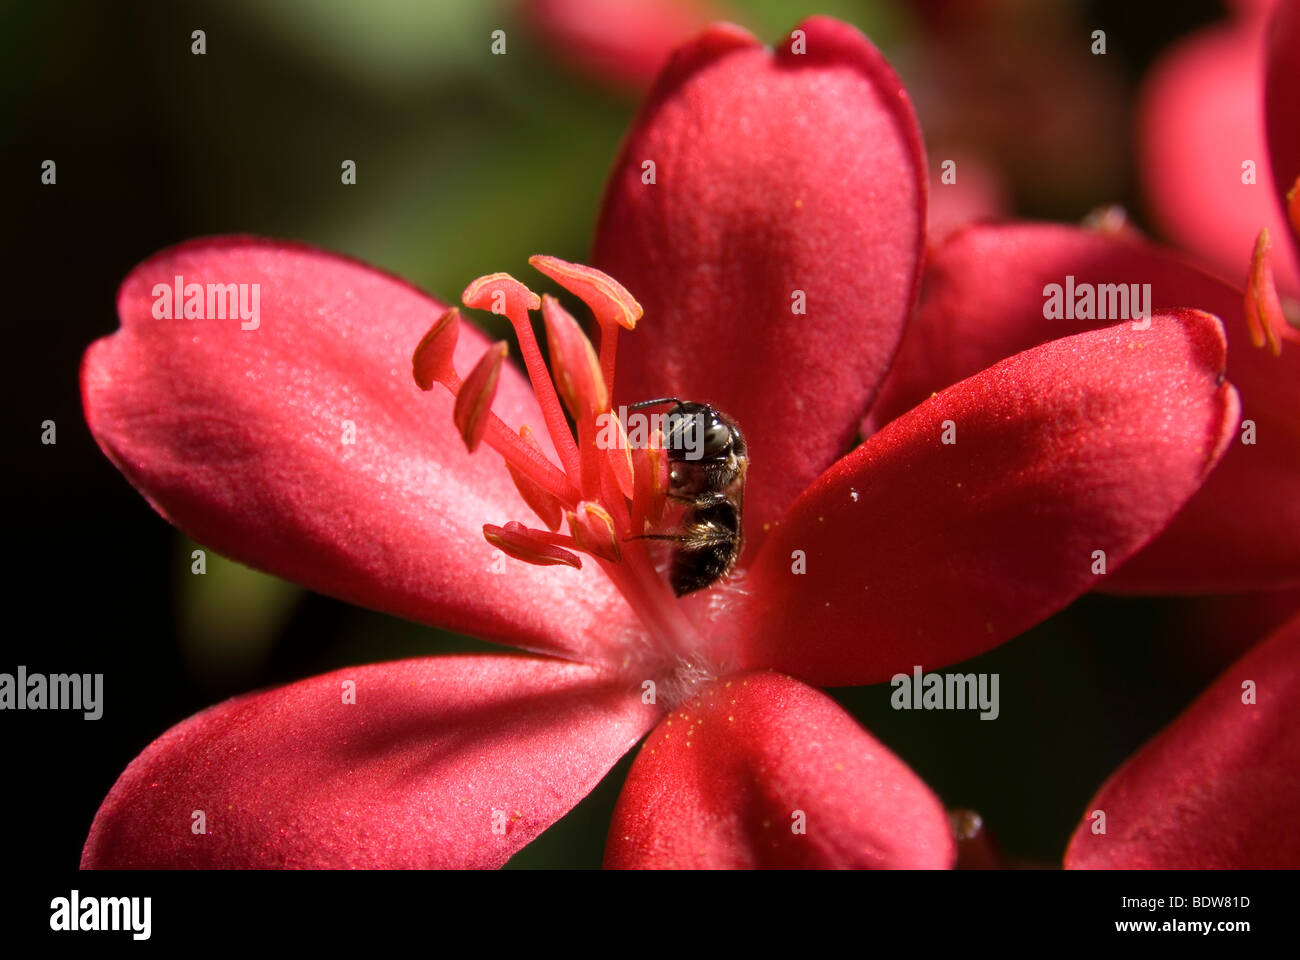 Close up of a sweat bee collecting pollen from flower. - Stock Image